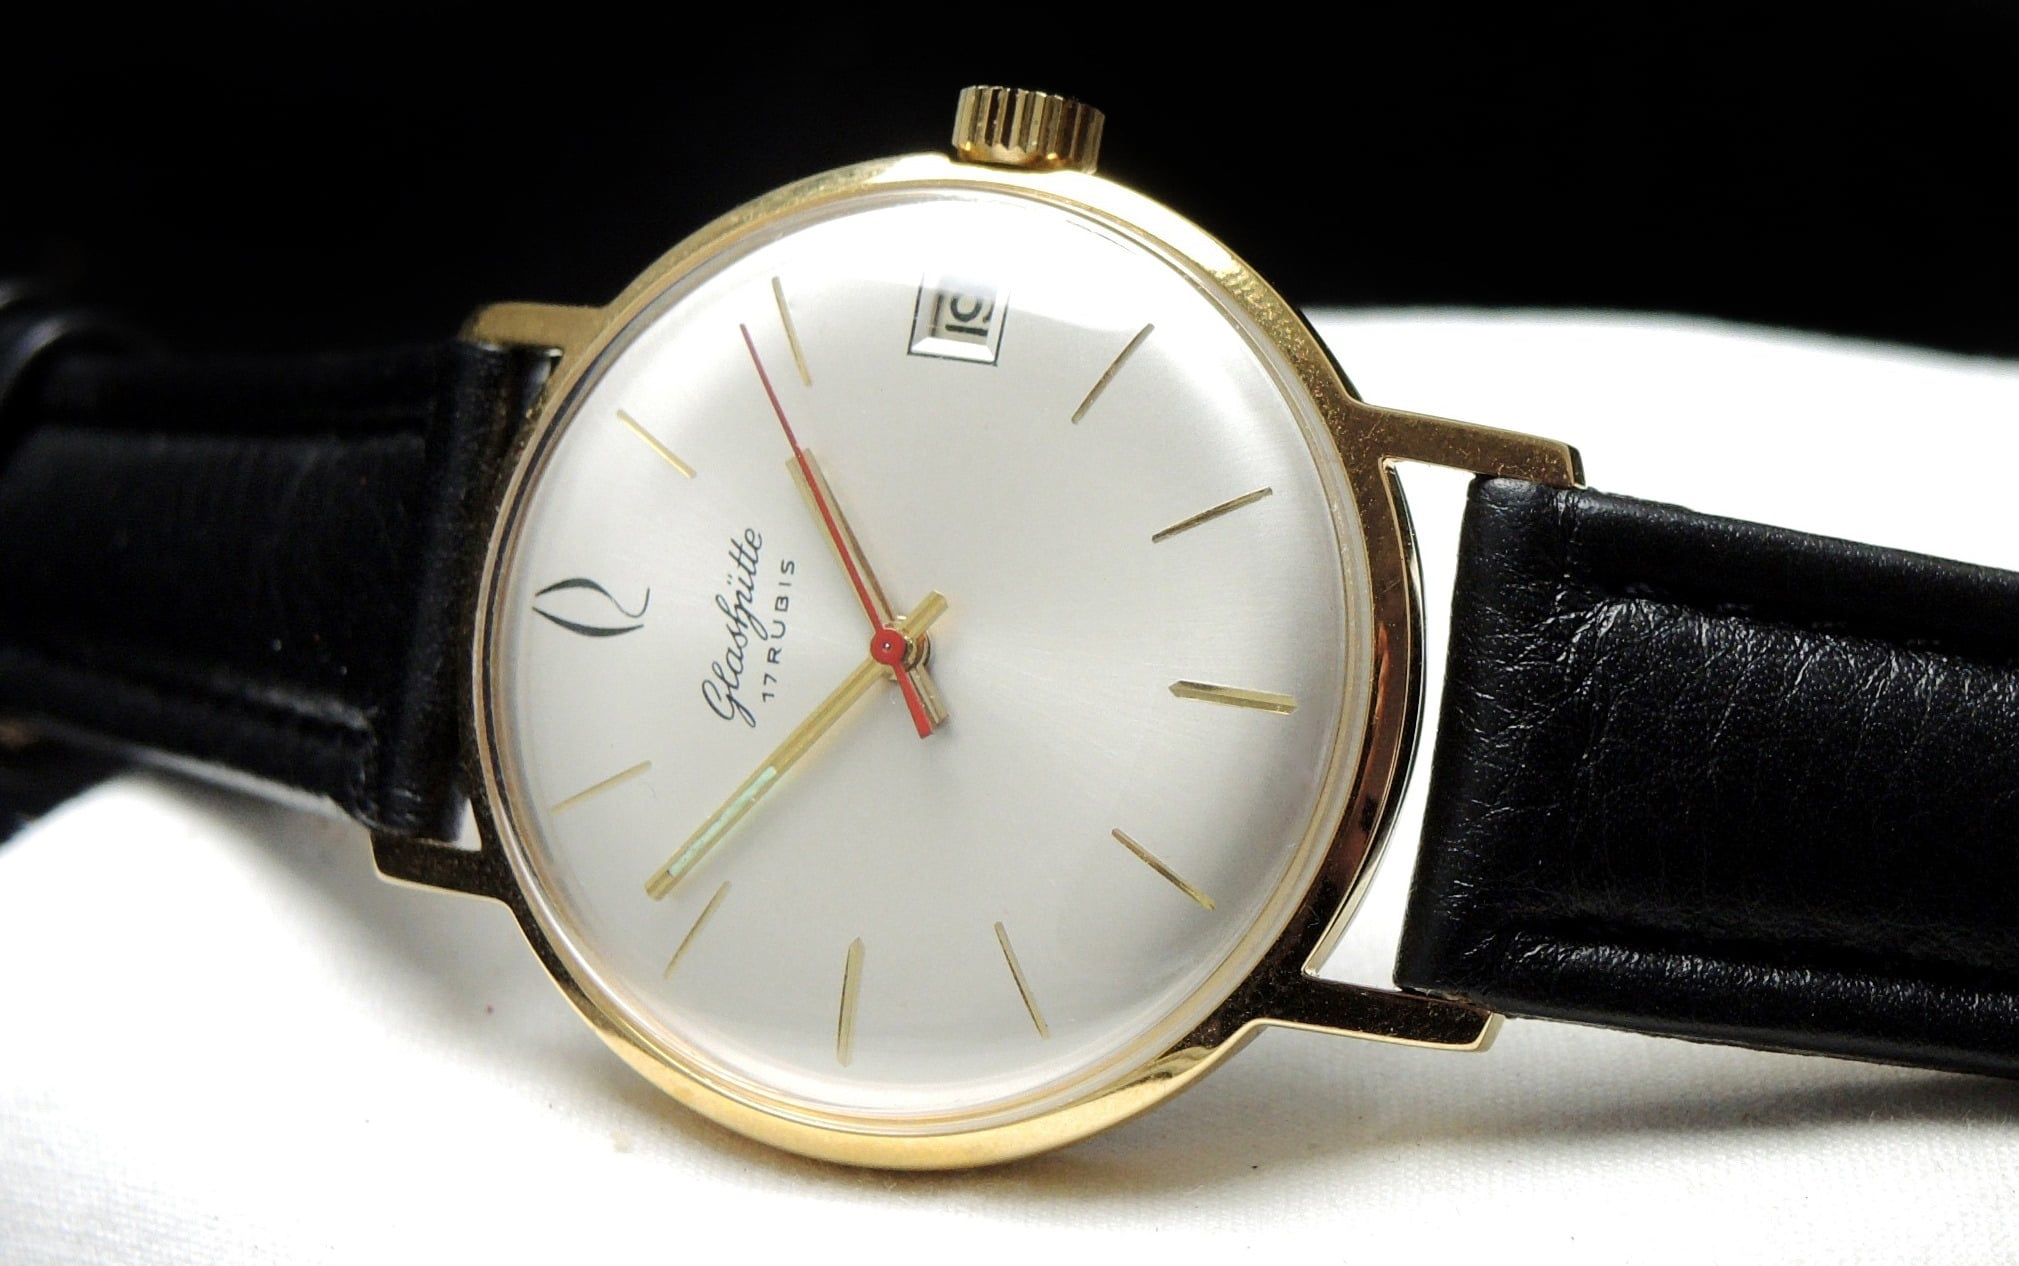 Glashutte vintage watches for sale